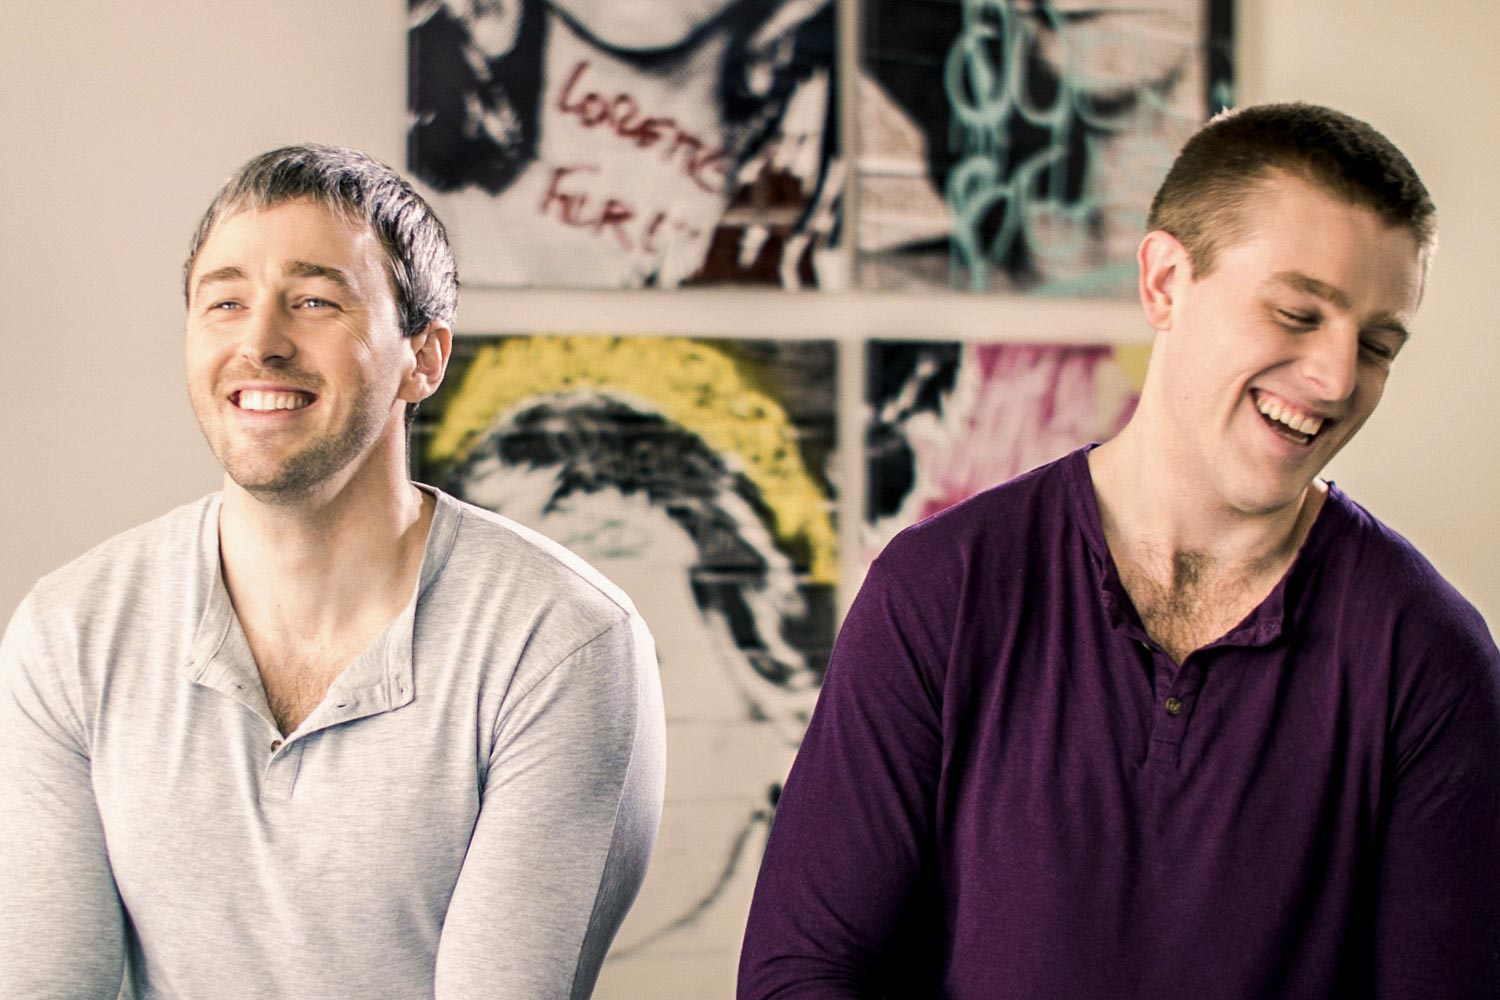 UVA alumni Bradford (left) and Bryan Manning were featured in the first episode of Facebook's new podcast, produced by fellow alumnus Matt Sutton.